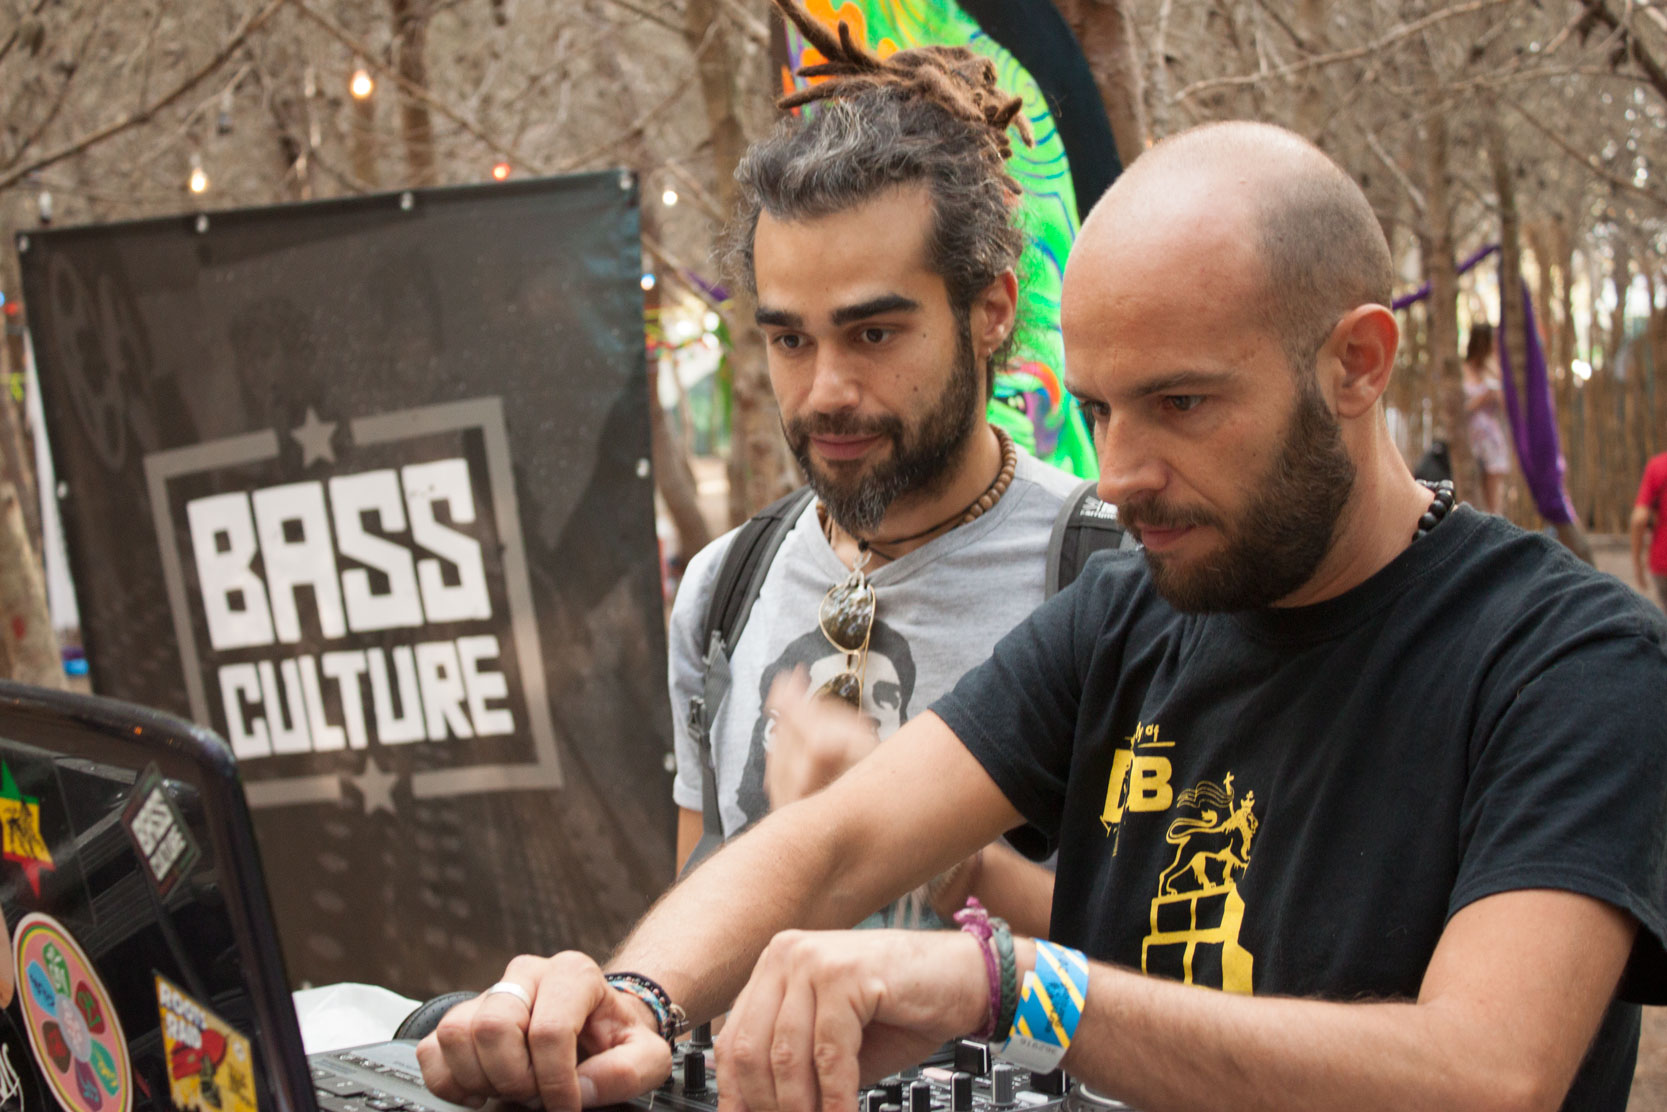 Bass-Culture-Earth-Garden-2014-01